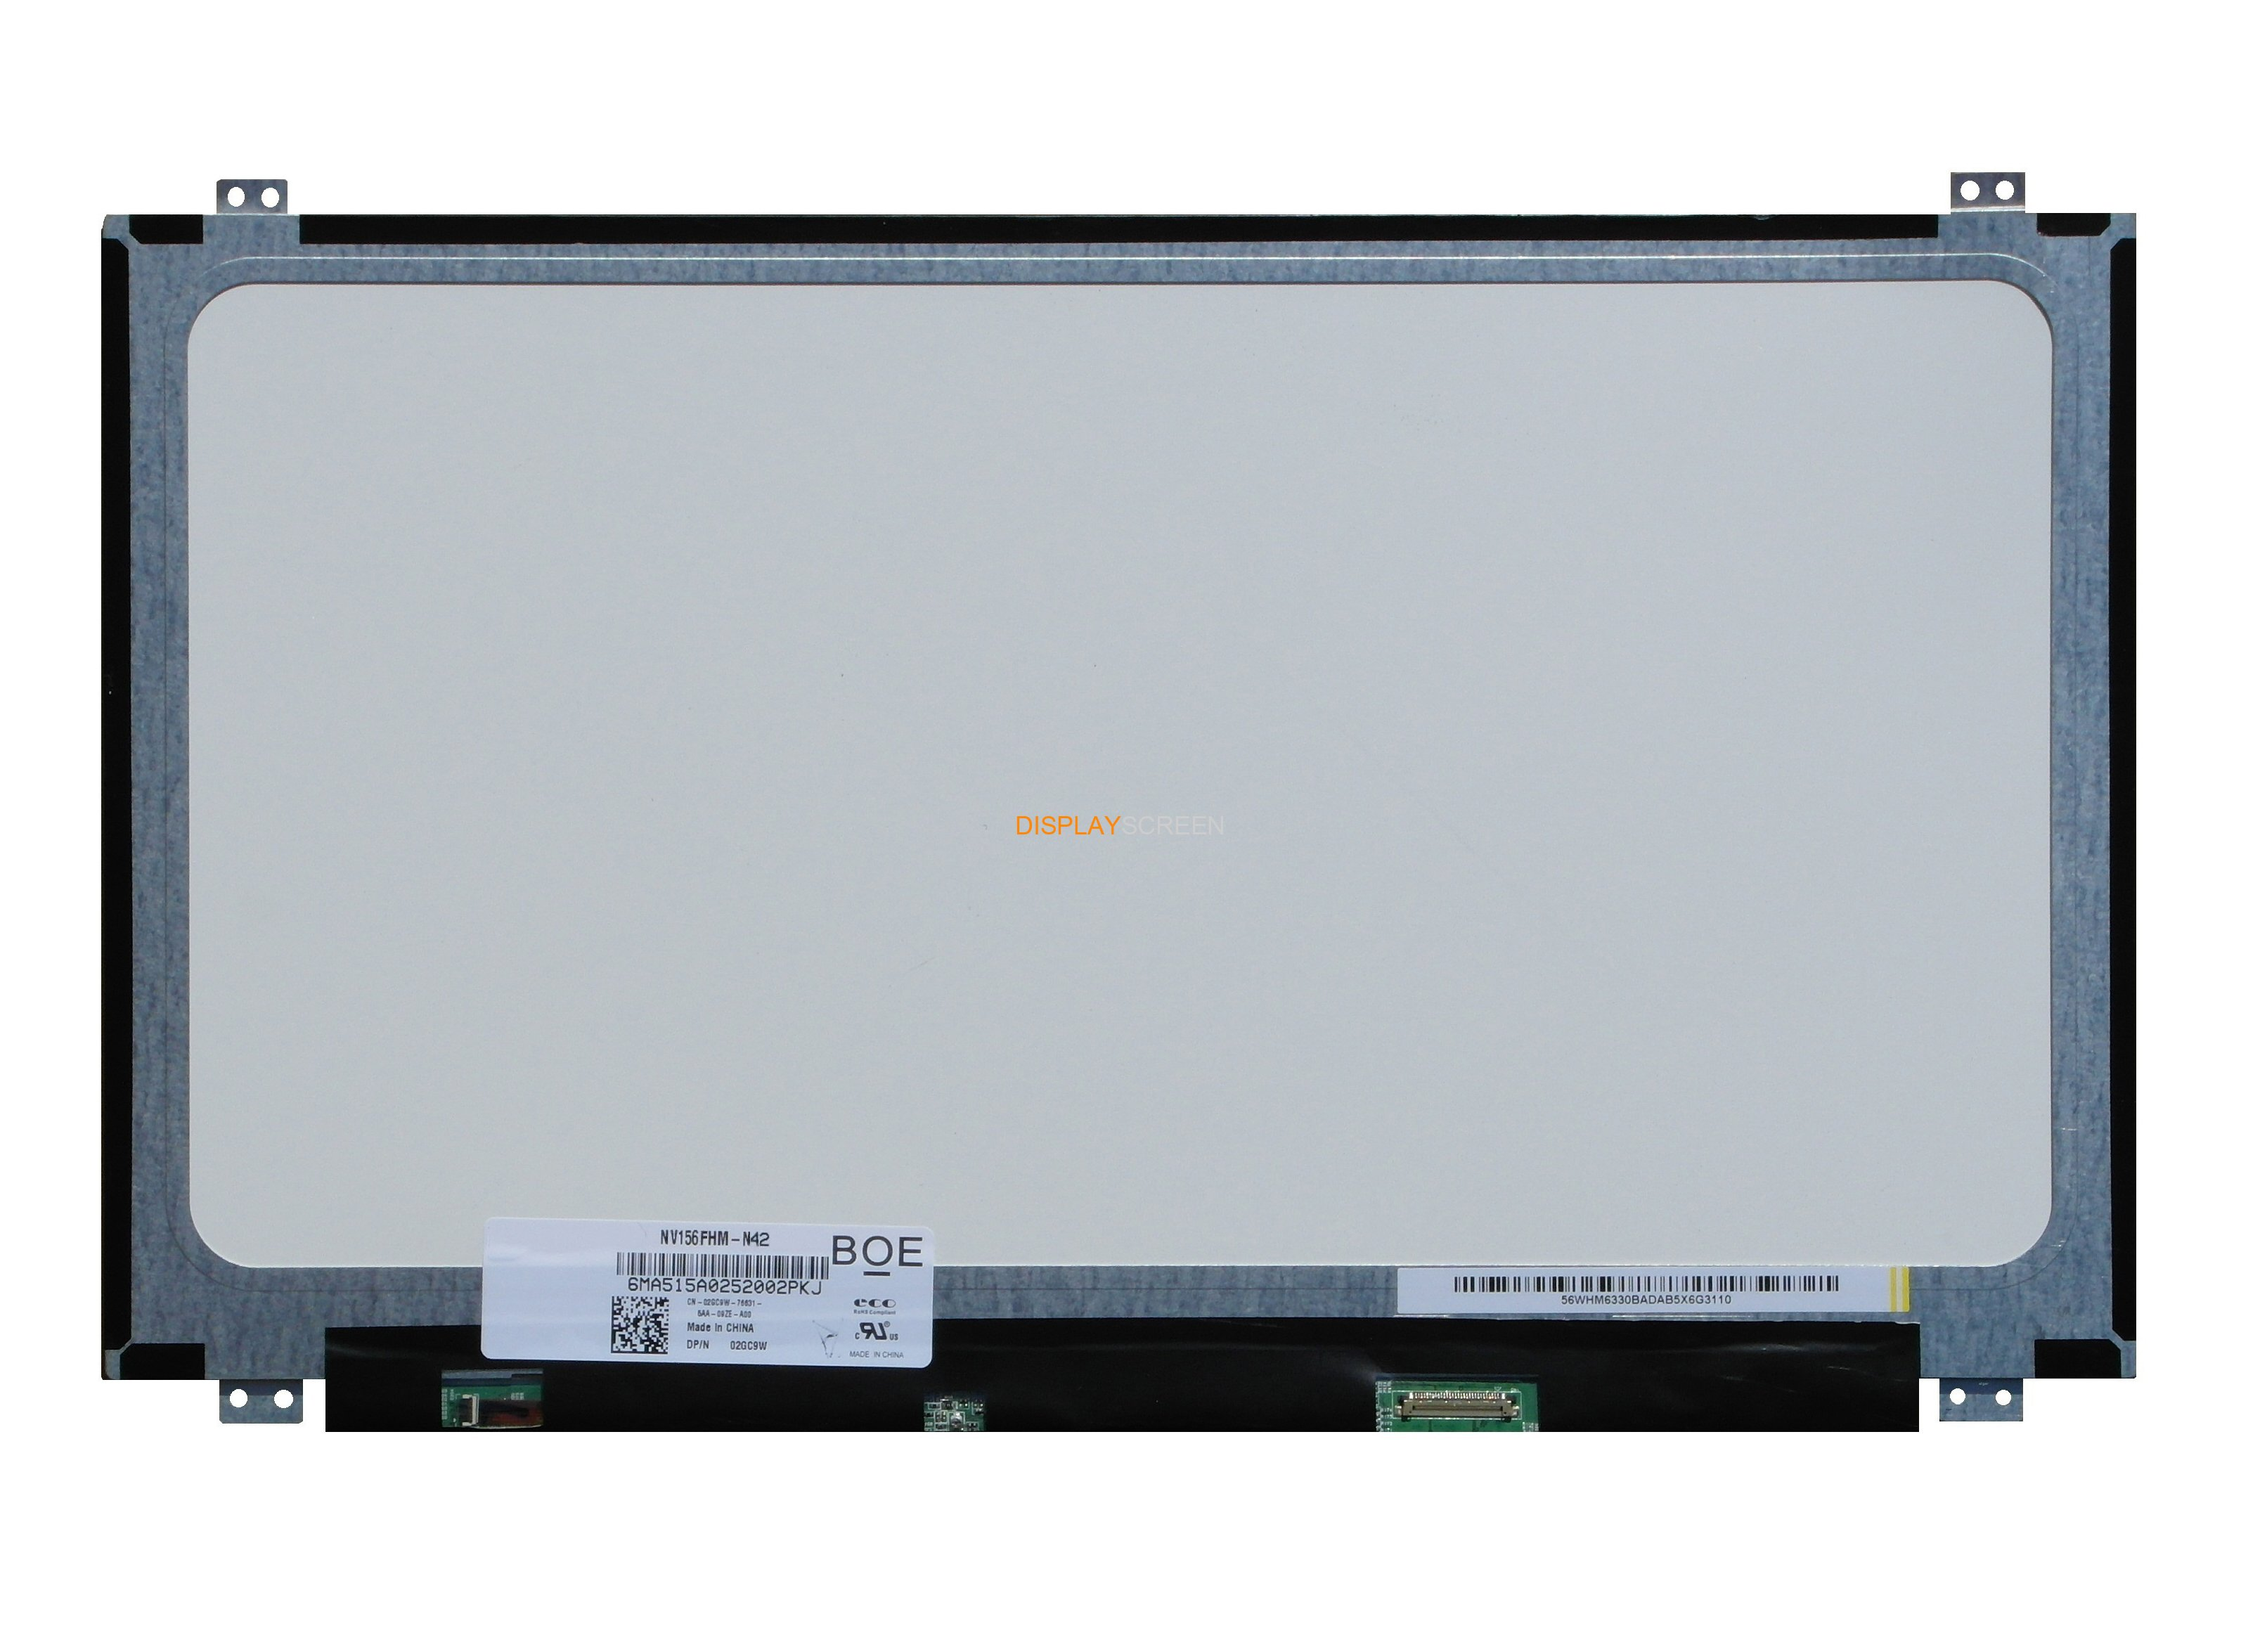 "Original NV156FHM-N35 BOE Screen 15.6"" 1920×1080 NV156FHM-N35 Display"